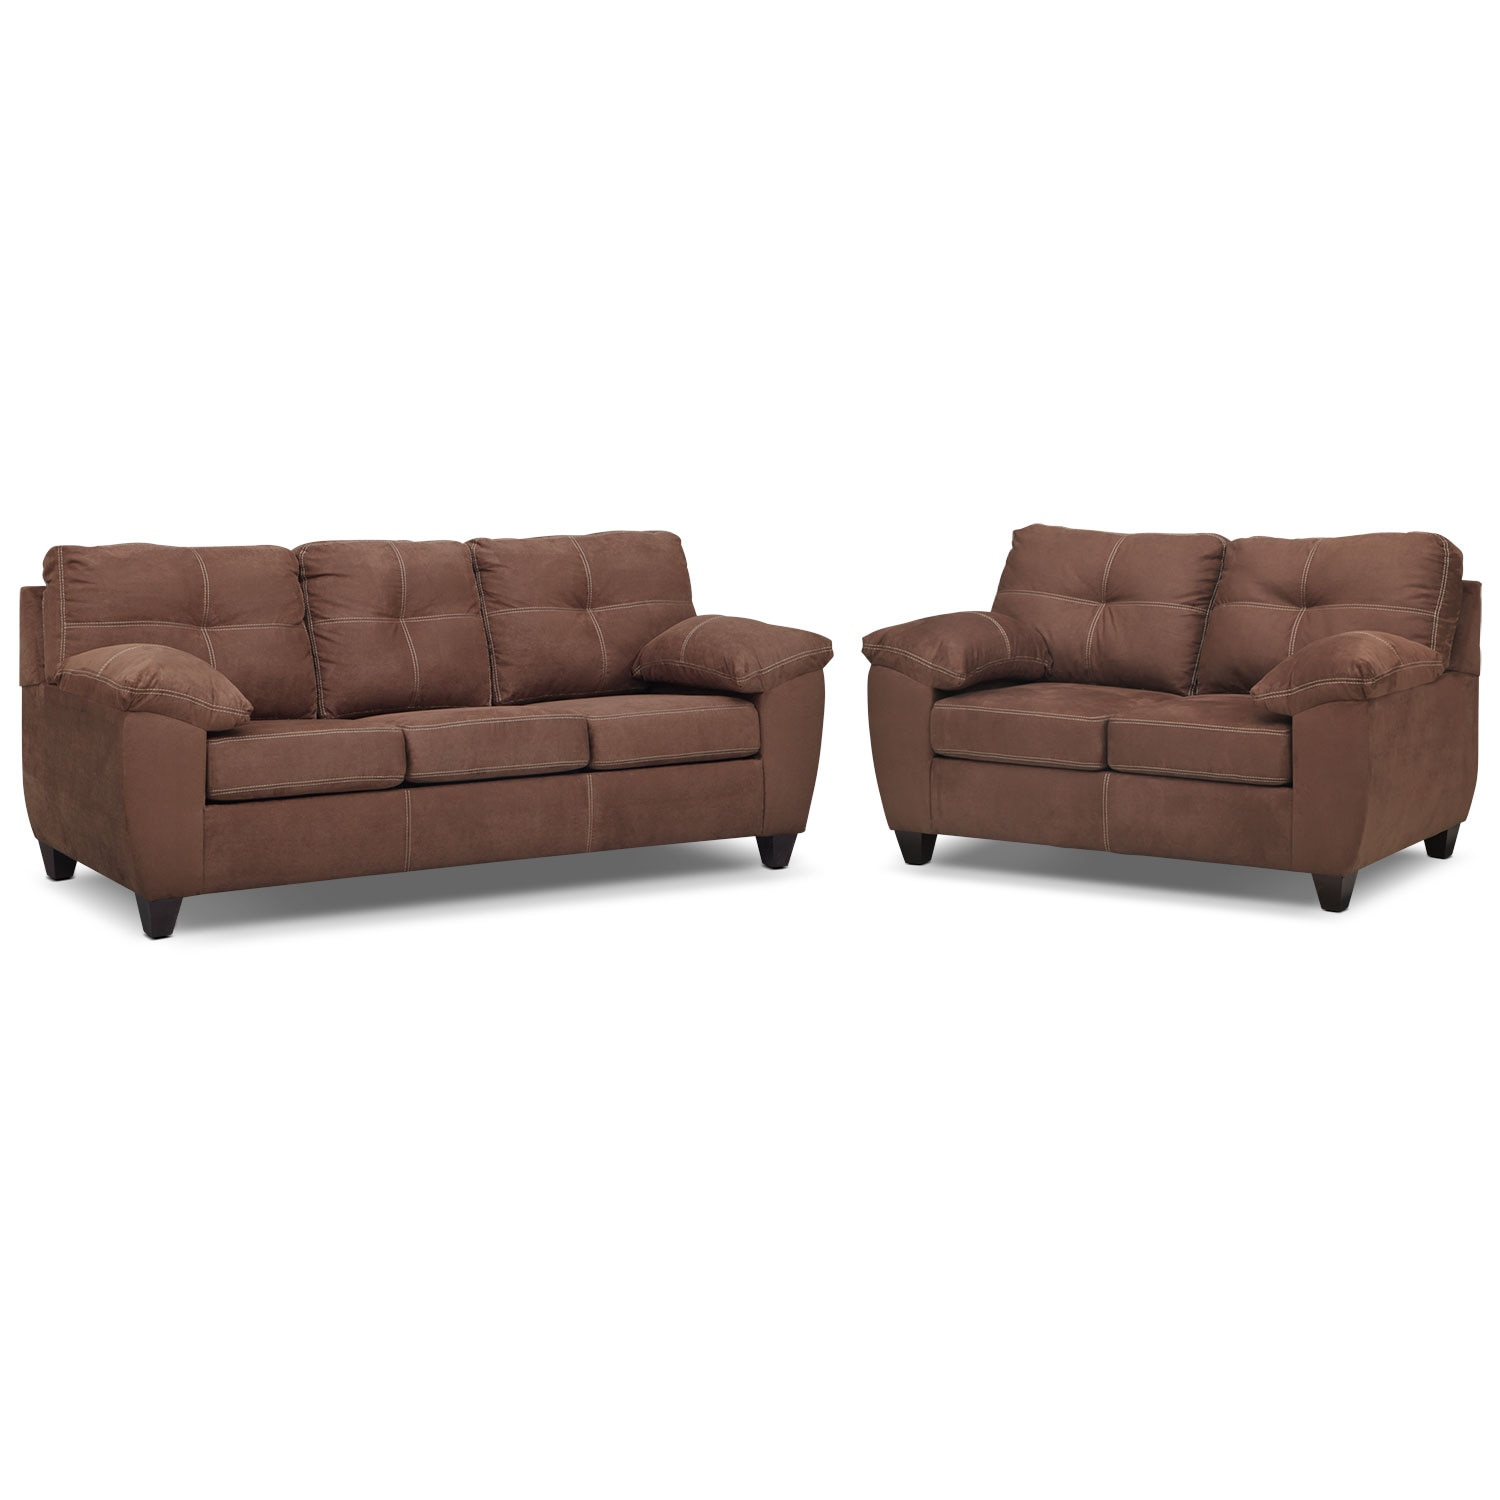 Living Room Furniture - Rialto Innerspring Sleeper Sofa and Loveseat Set - Coffee